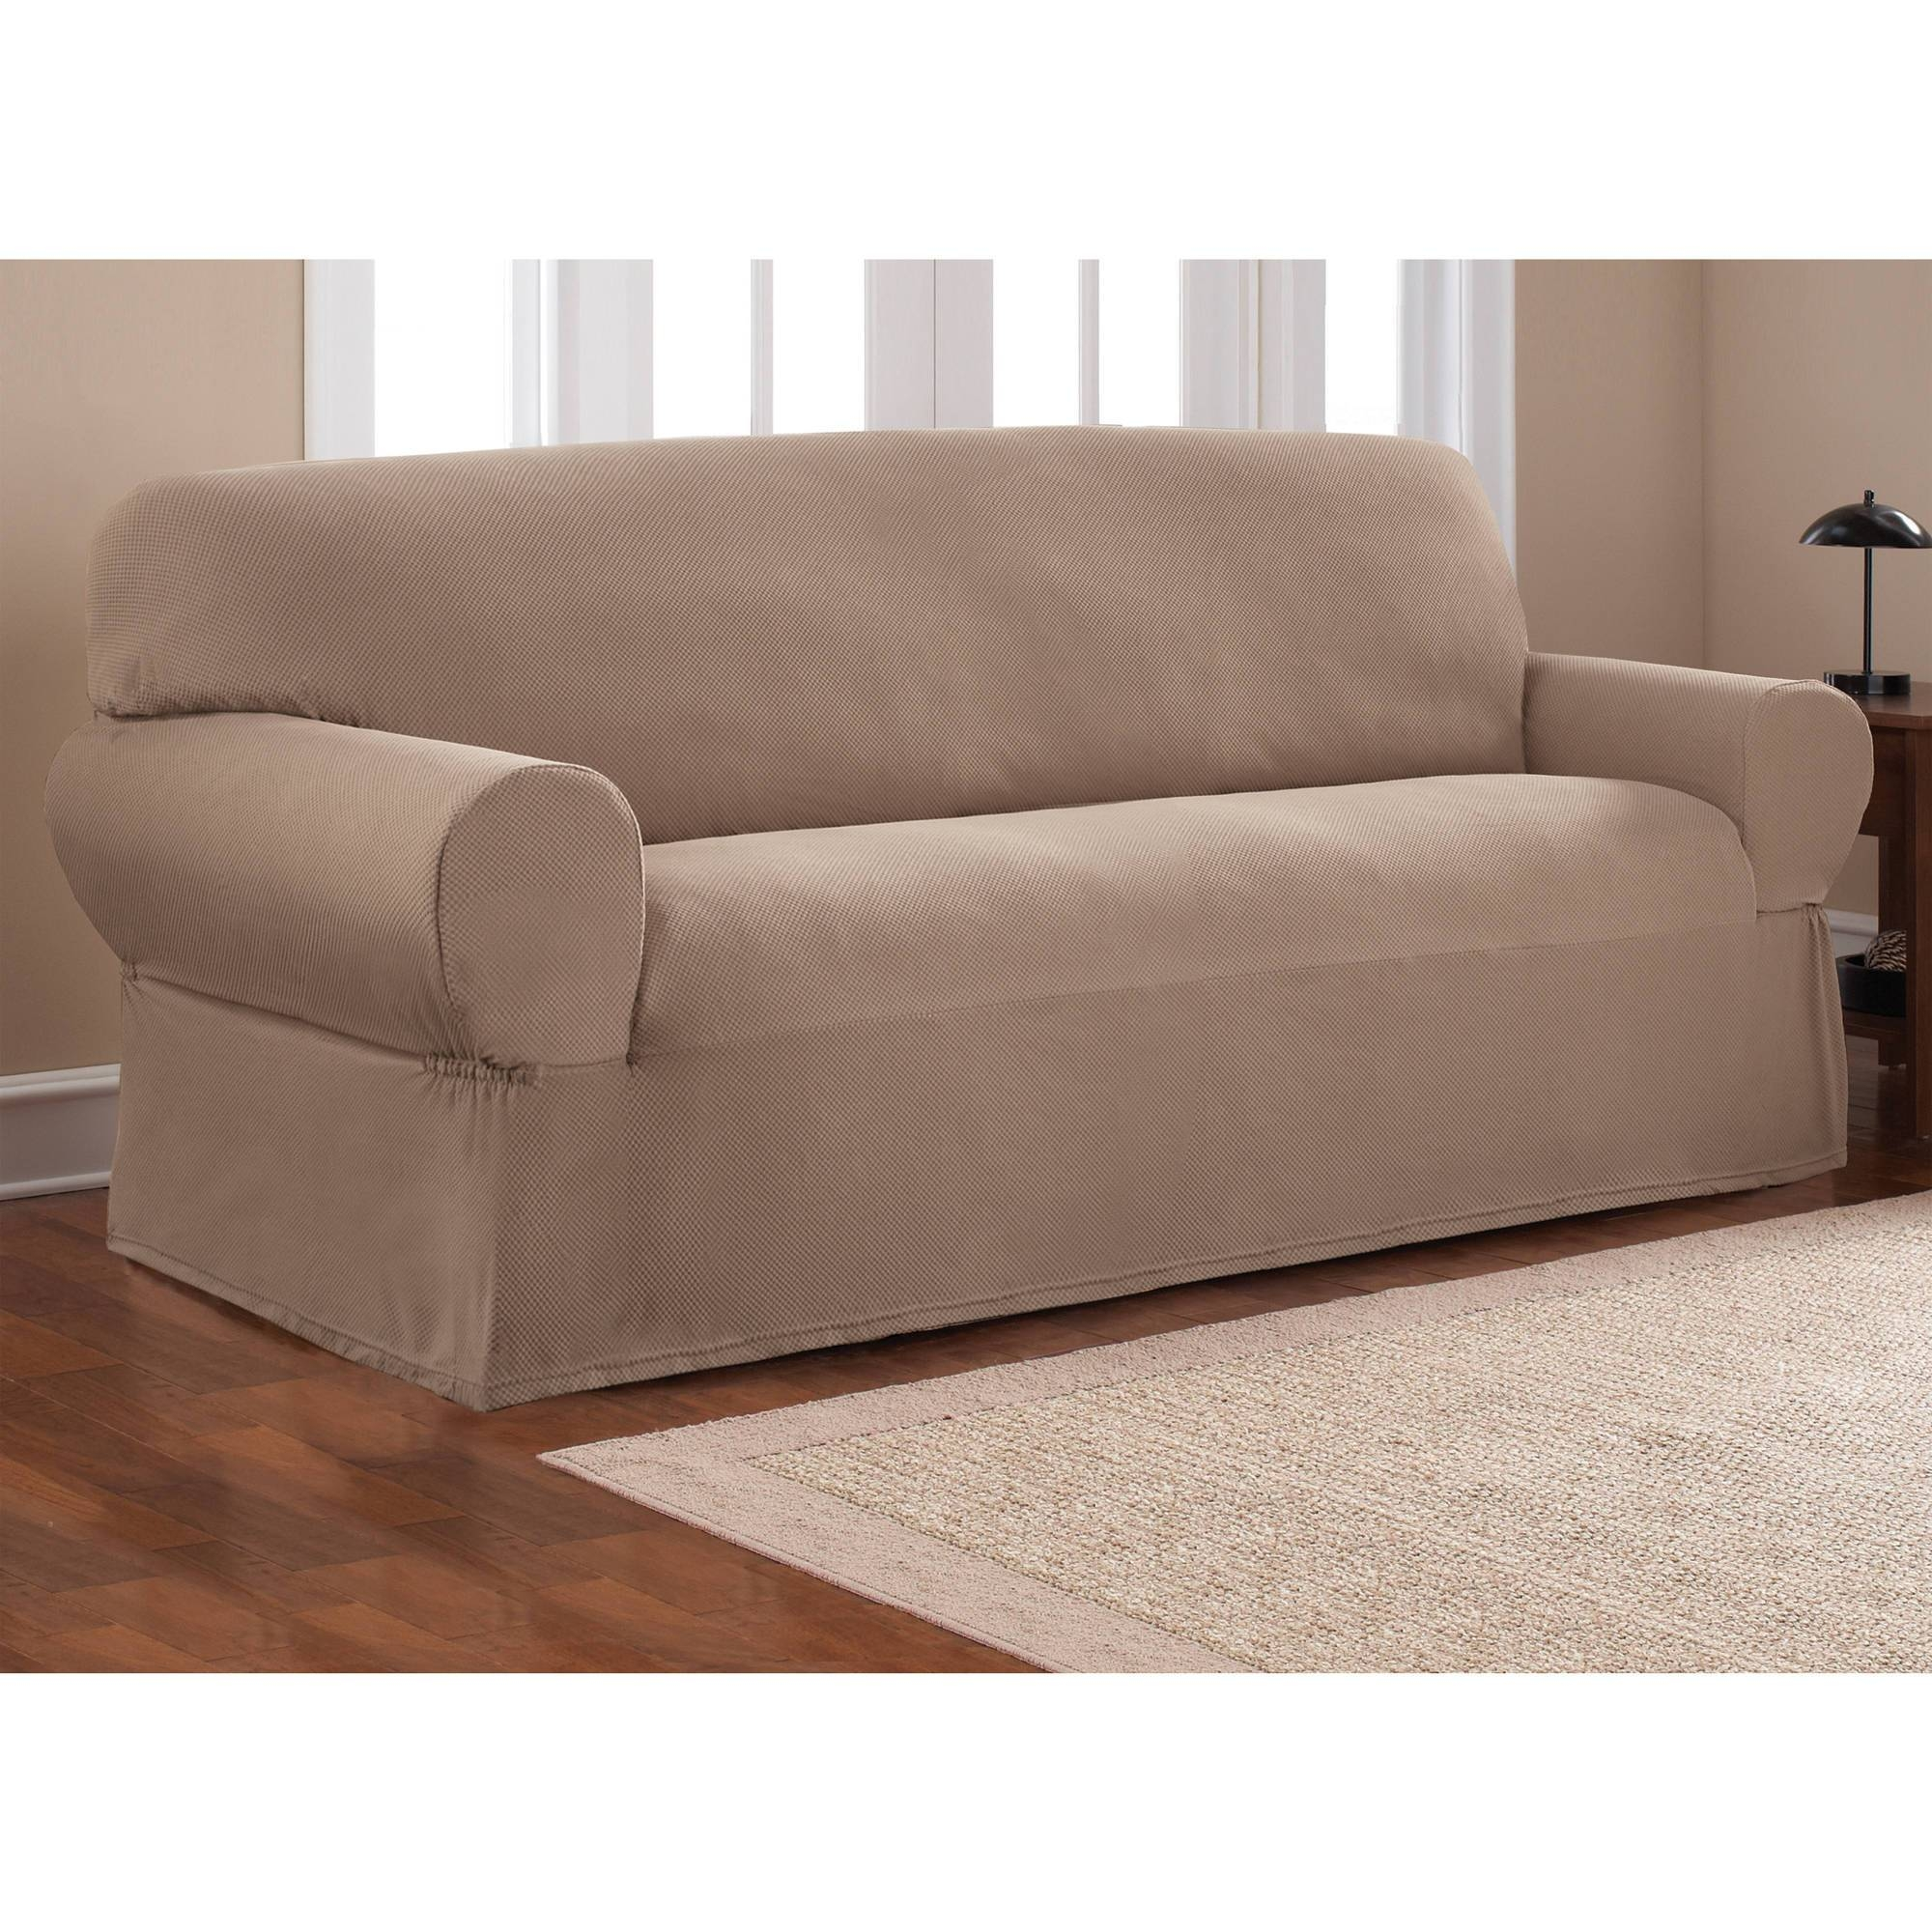 Sofa: Recliner Couch Covers | Couch Recliner Covers | Slipcover for Slip Covers For Love Seats (Image 13 of 15)